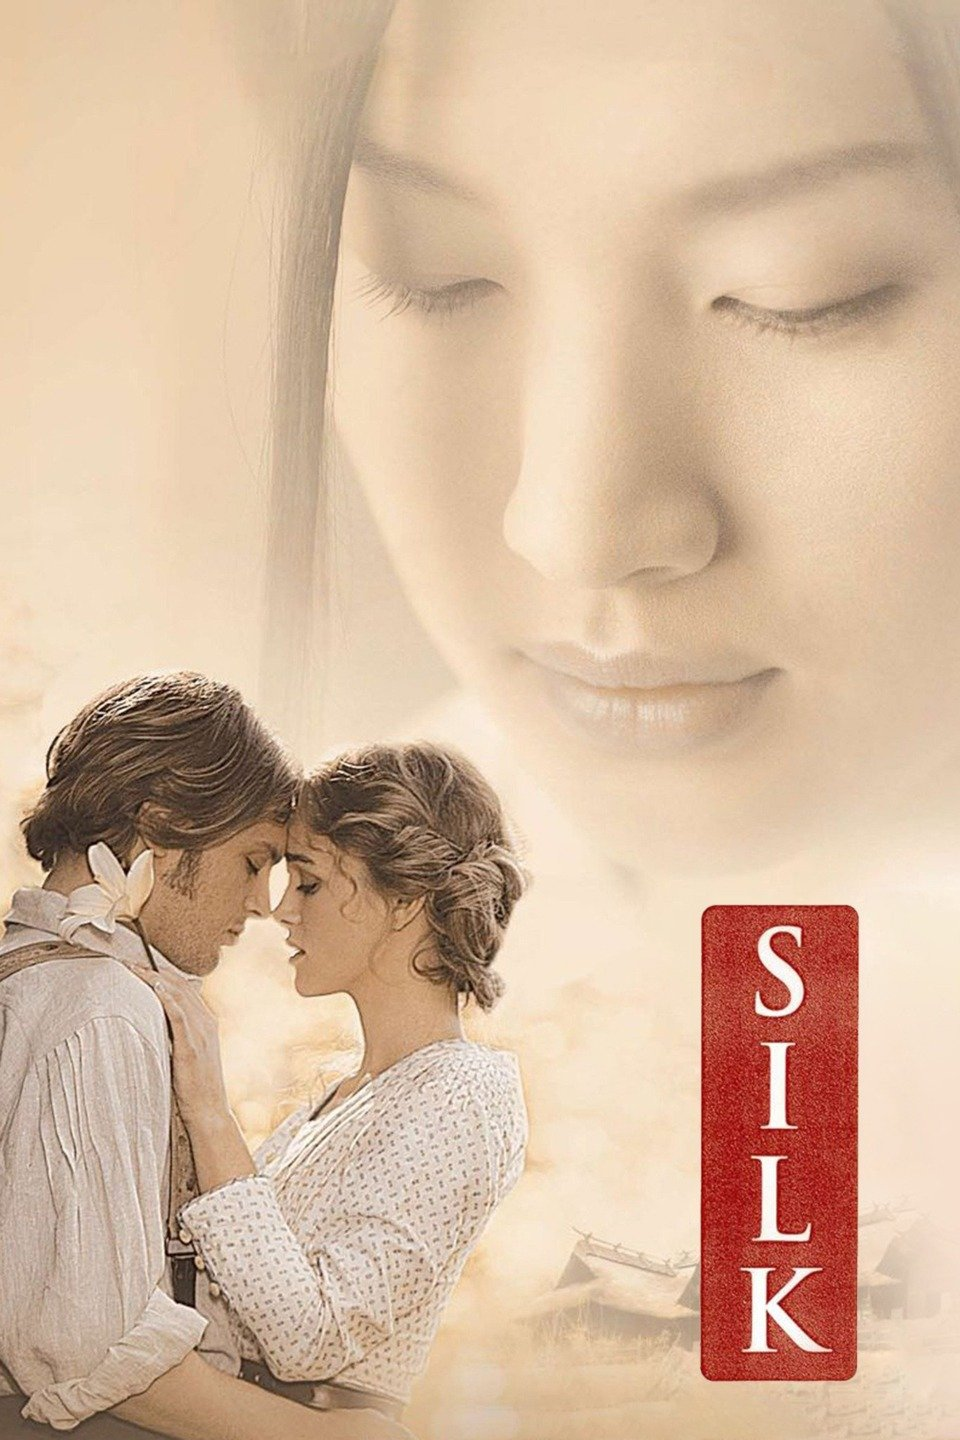 18+ Silk 2007 English 350MB HDRip 480p Free Download